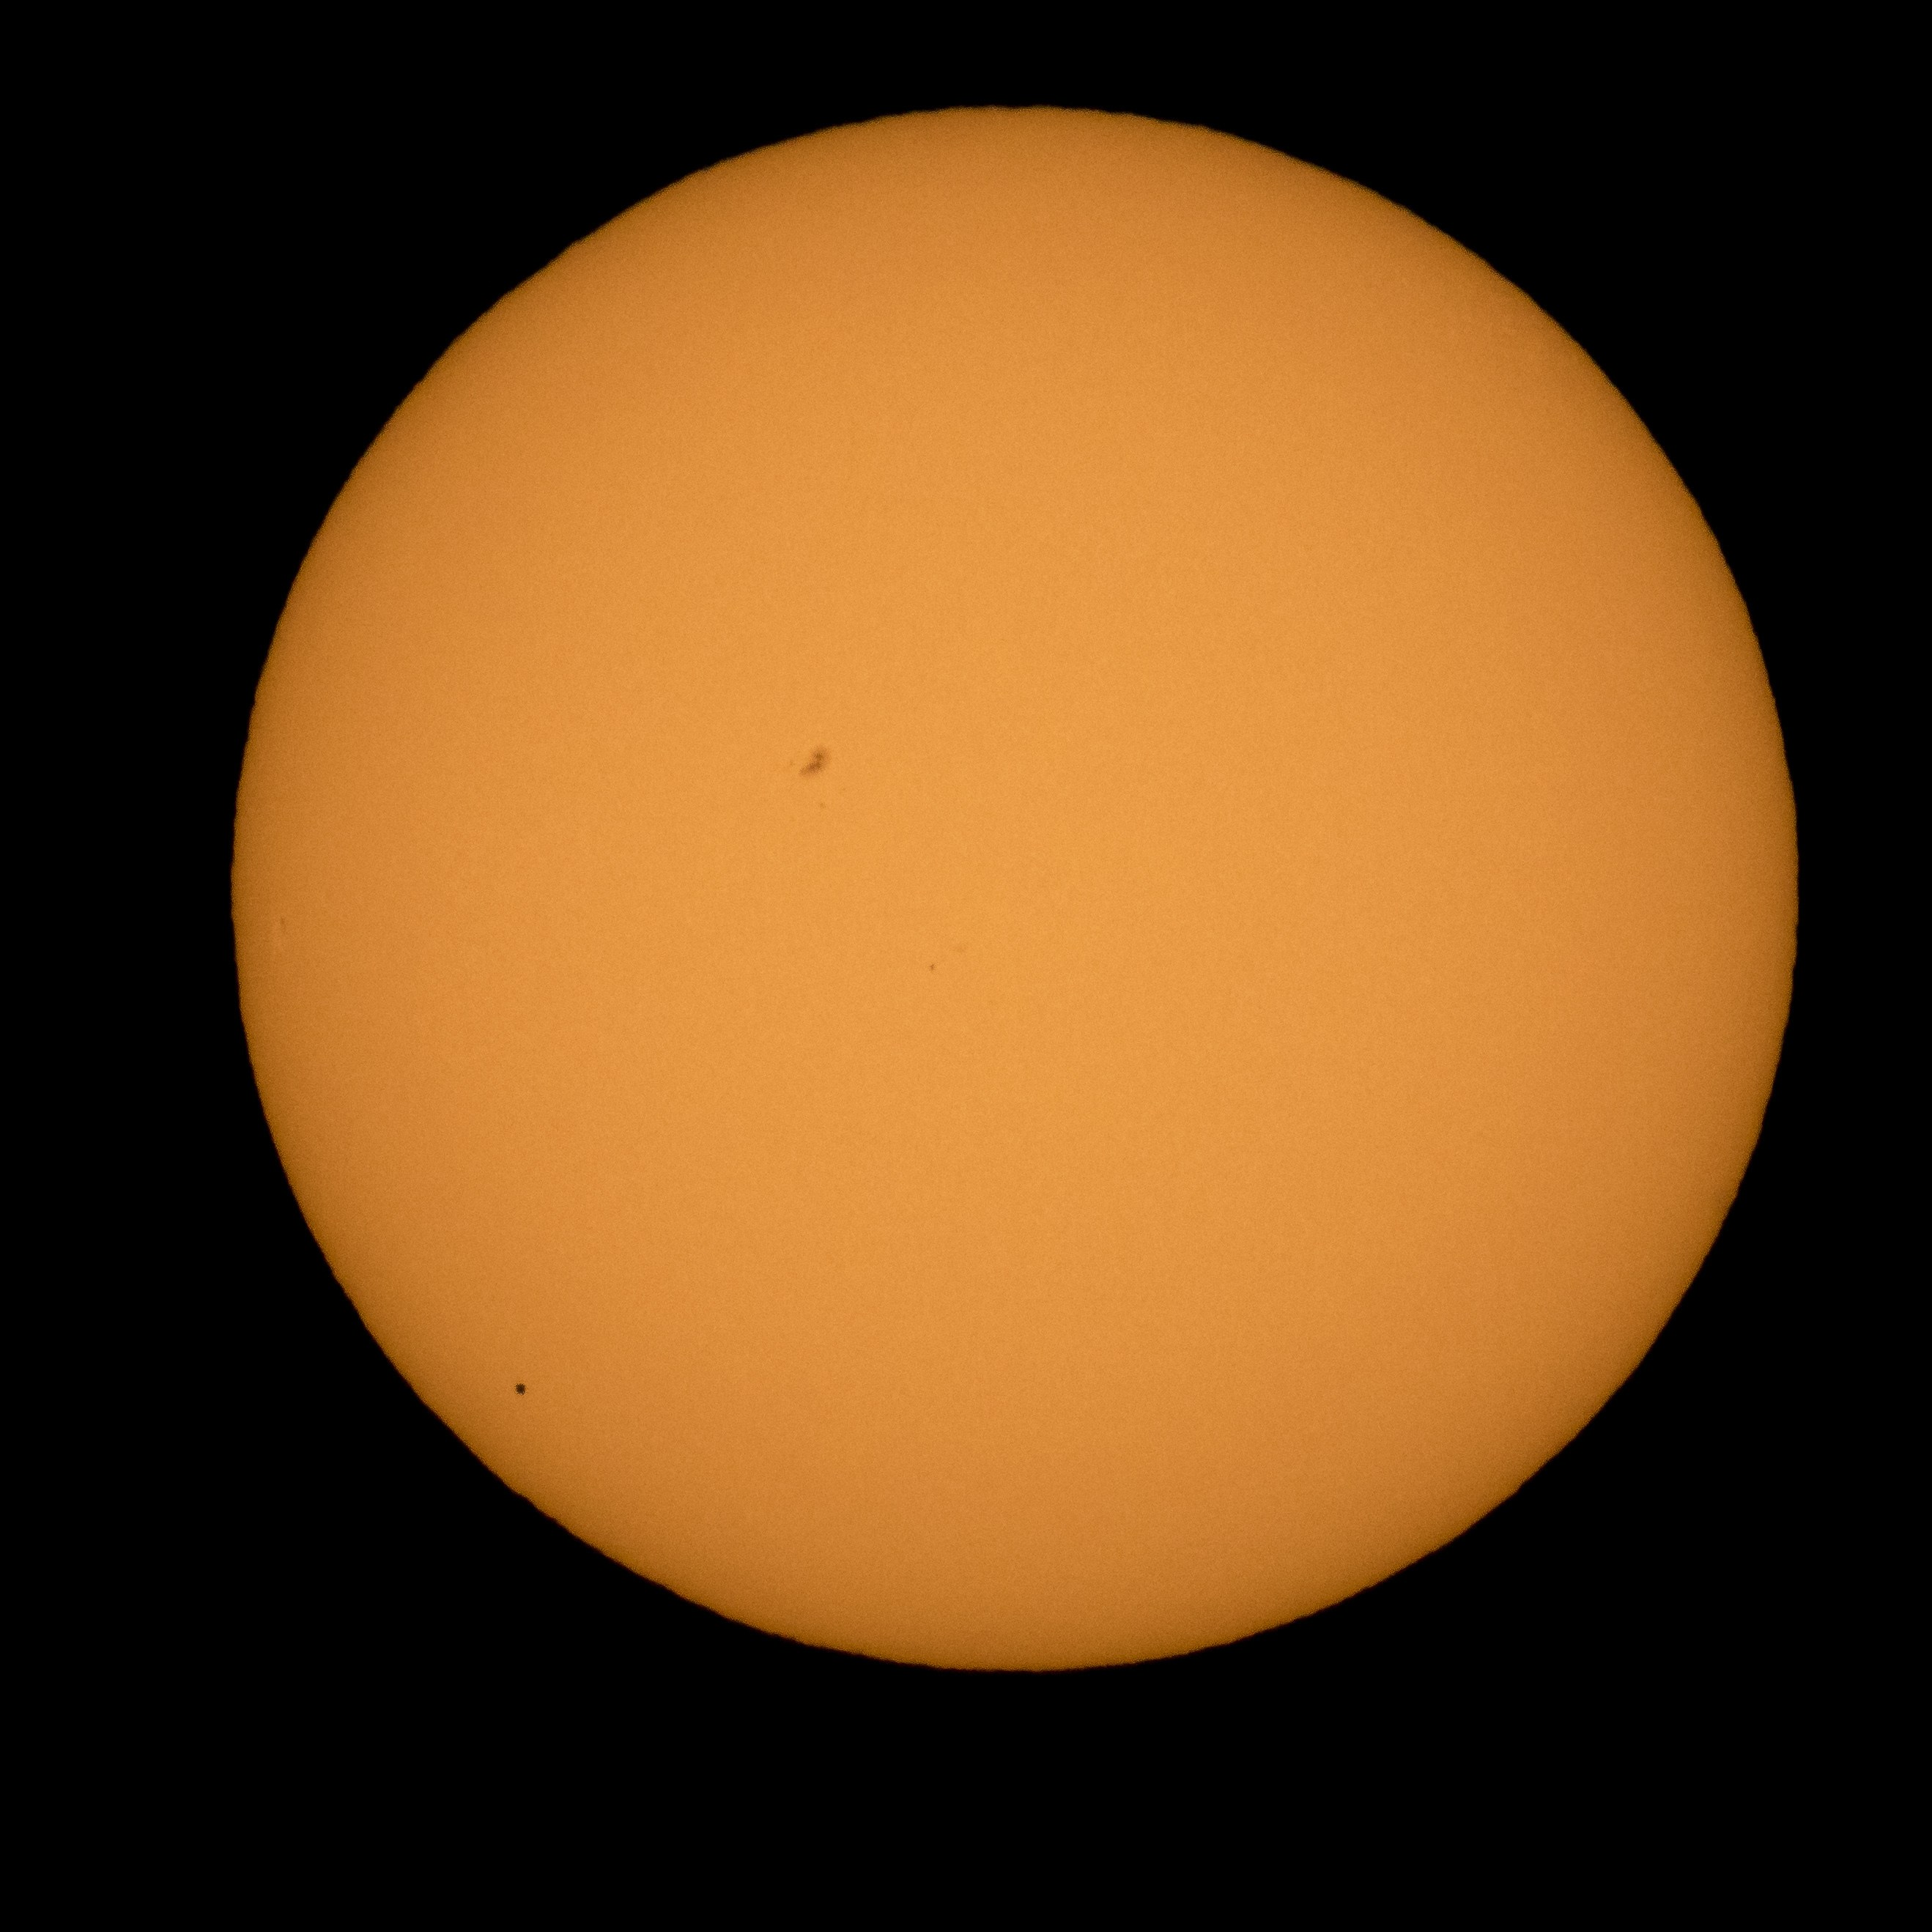 The planet Mercury is seen in silhouette lower left as it transits across the face of the sun